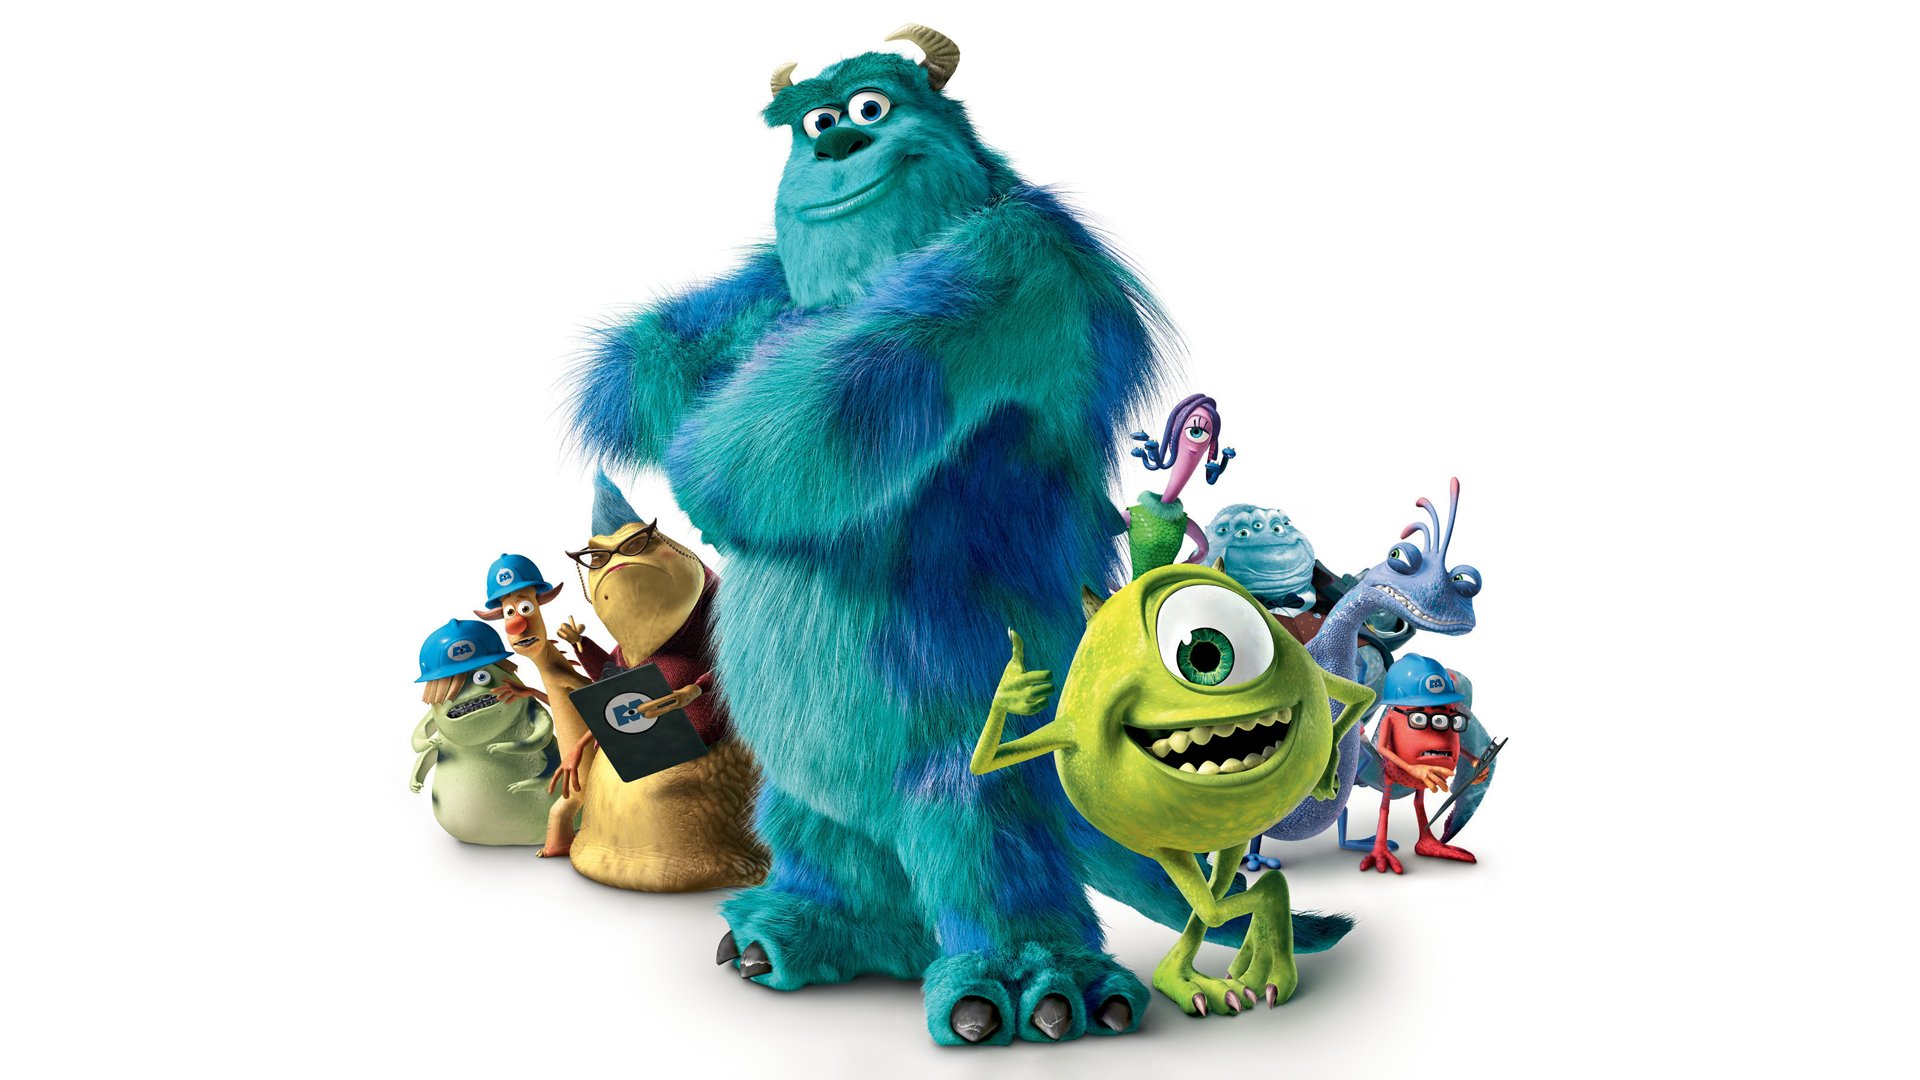 monsters inc hd wallpaper background image 1920x1080 id